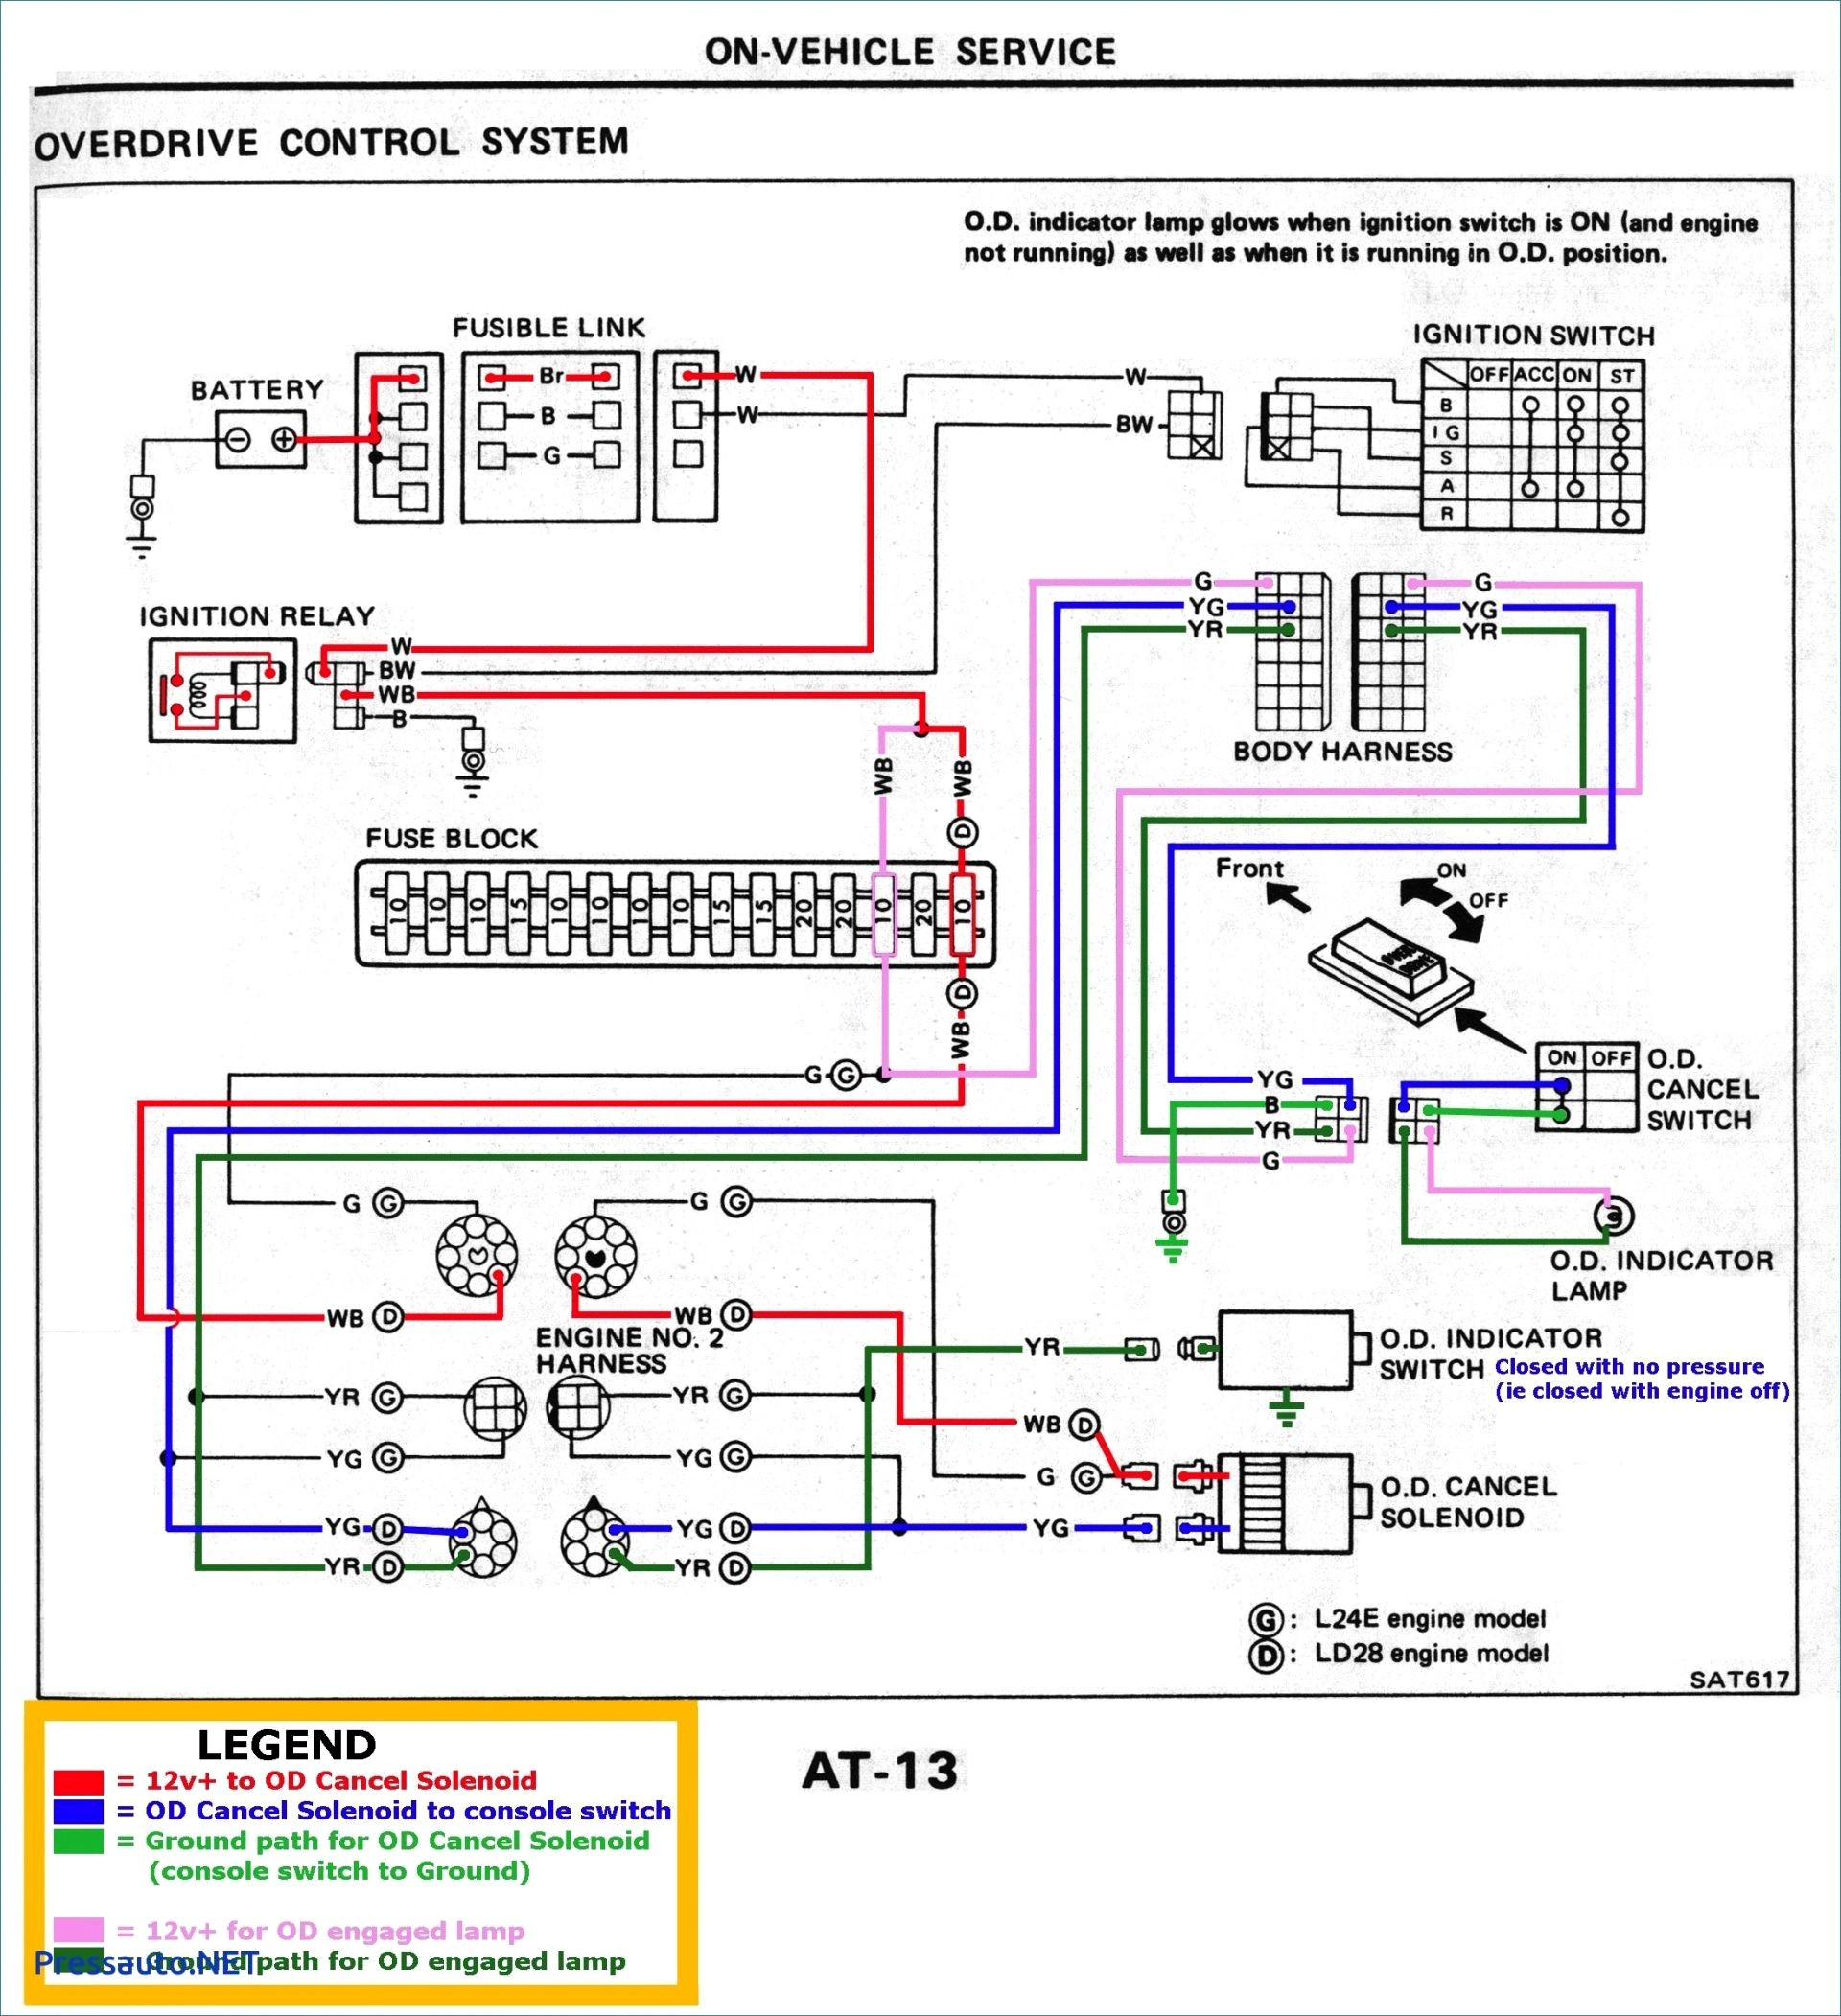 1996 Chevy S10 Wiring Diagram 89 Chevy Wiring Harness Data Wiring Diagrams • Of 1996 Chevy S10 Wiring Diagram 1997 Chevy S10 Wiring Diagram Collection